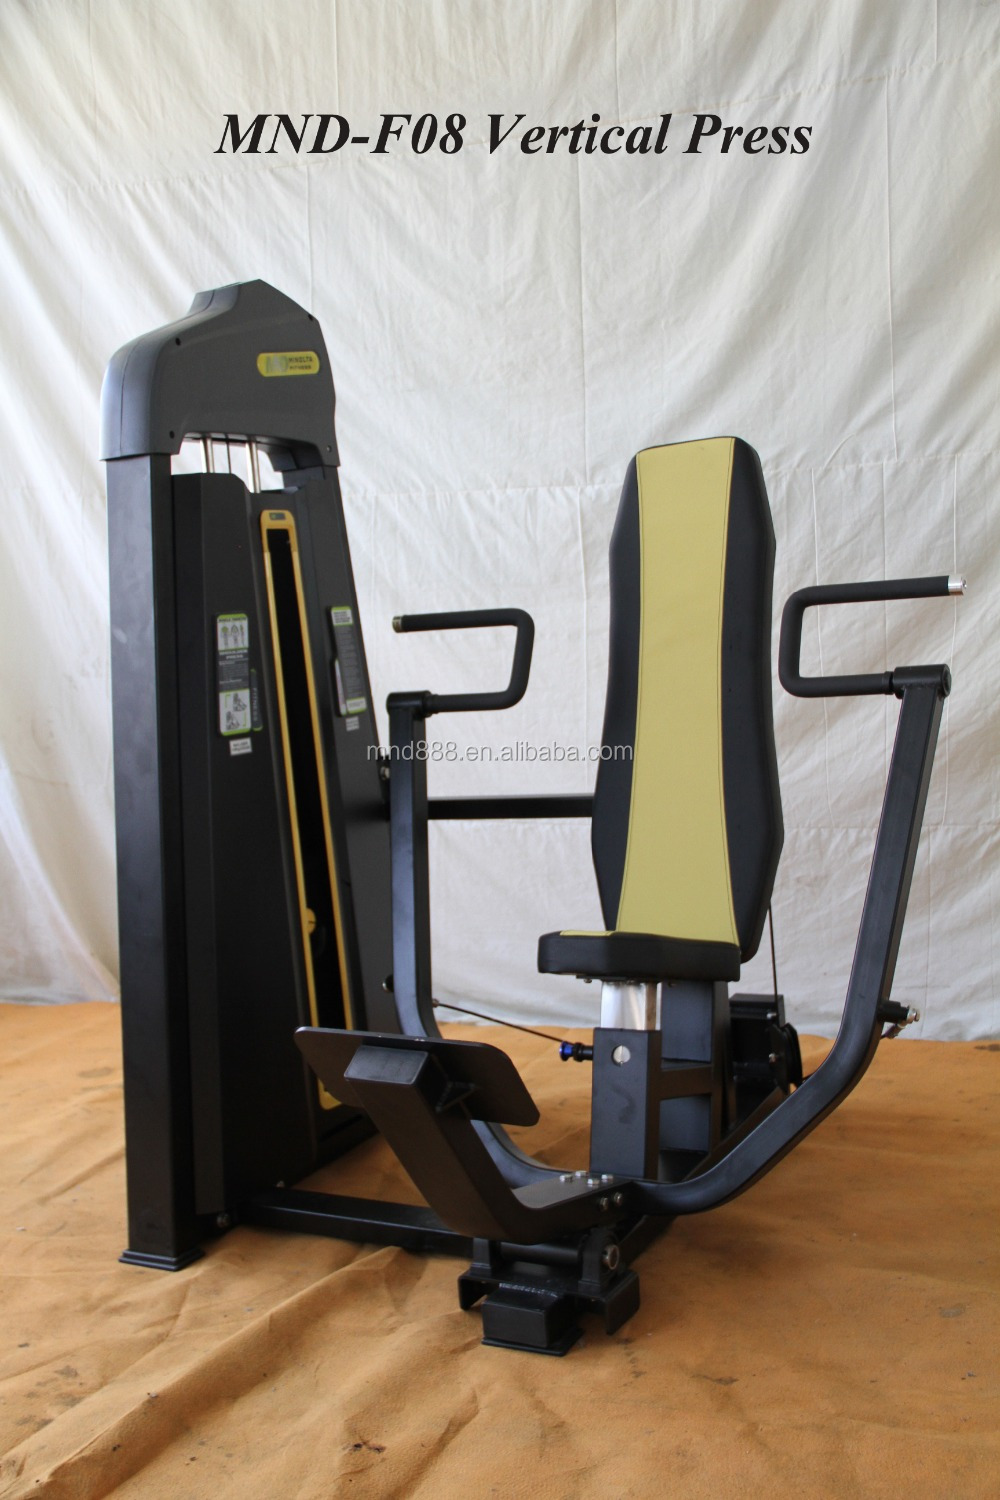 Vertical Press directly sale gym equipment/gym fitness equipment